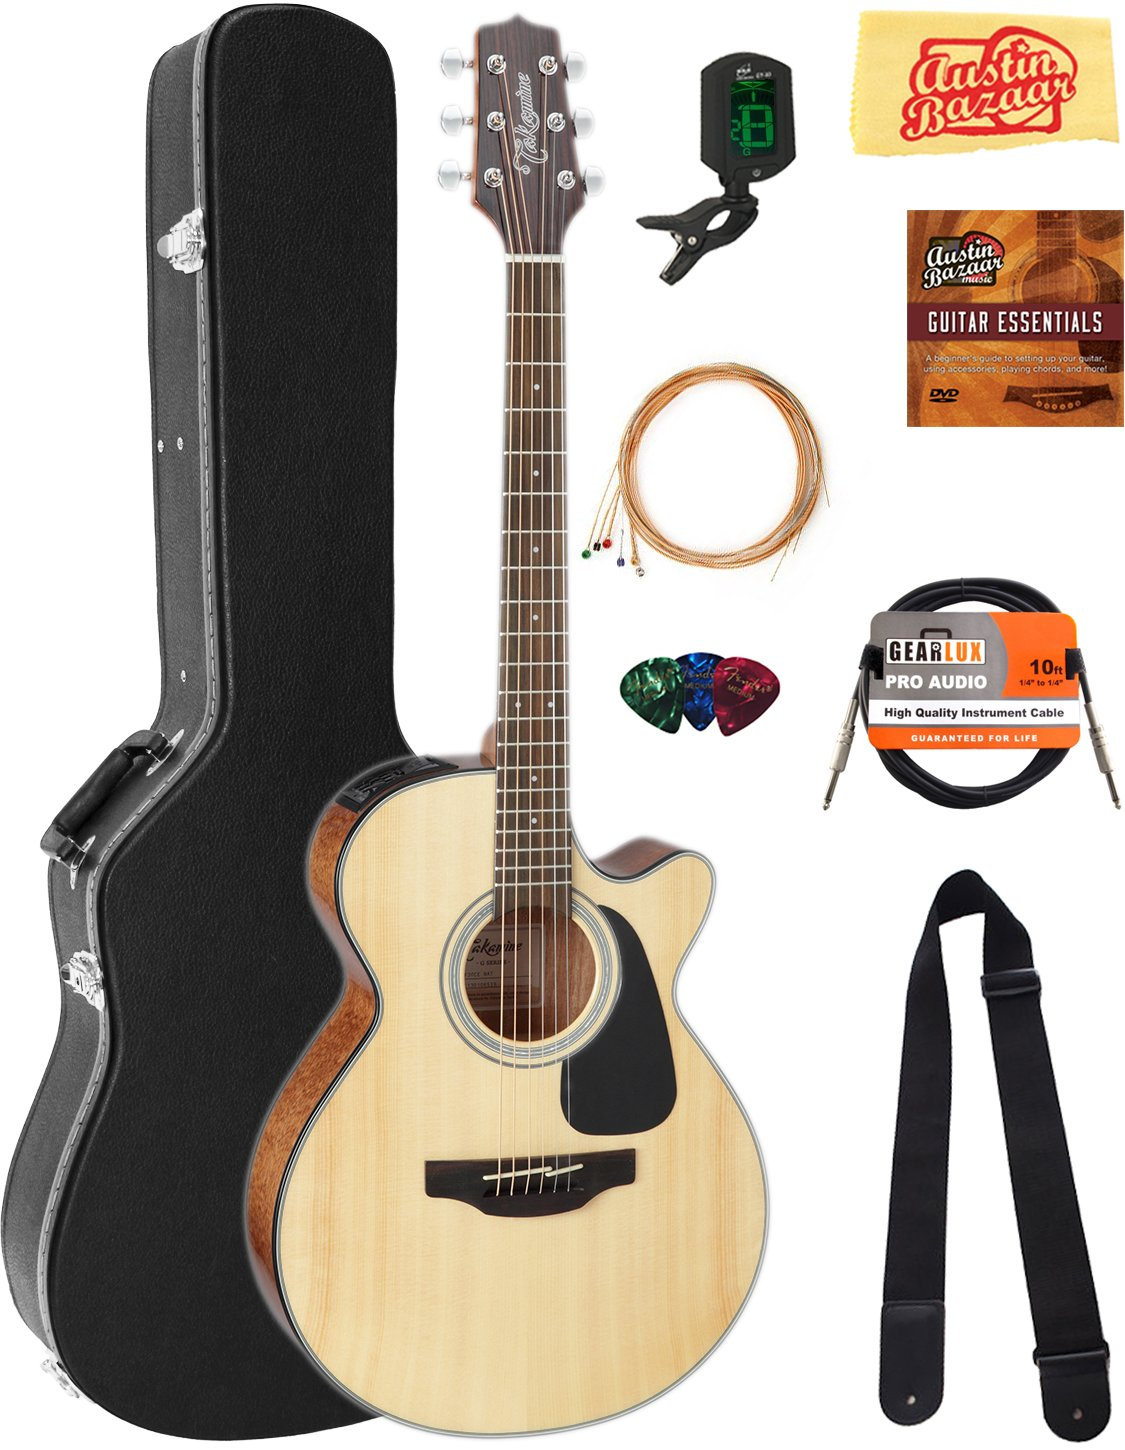 Takamine GF30CE FXC Cutaway Acoustic-Electric Guitar - Natural Bundle with Hard Case, Cable, Tuner, Strap, Strings, Picks, Austin Bazaar Instructional DVD, and Polishing Cloth by Takamine